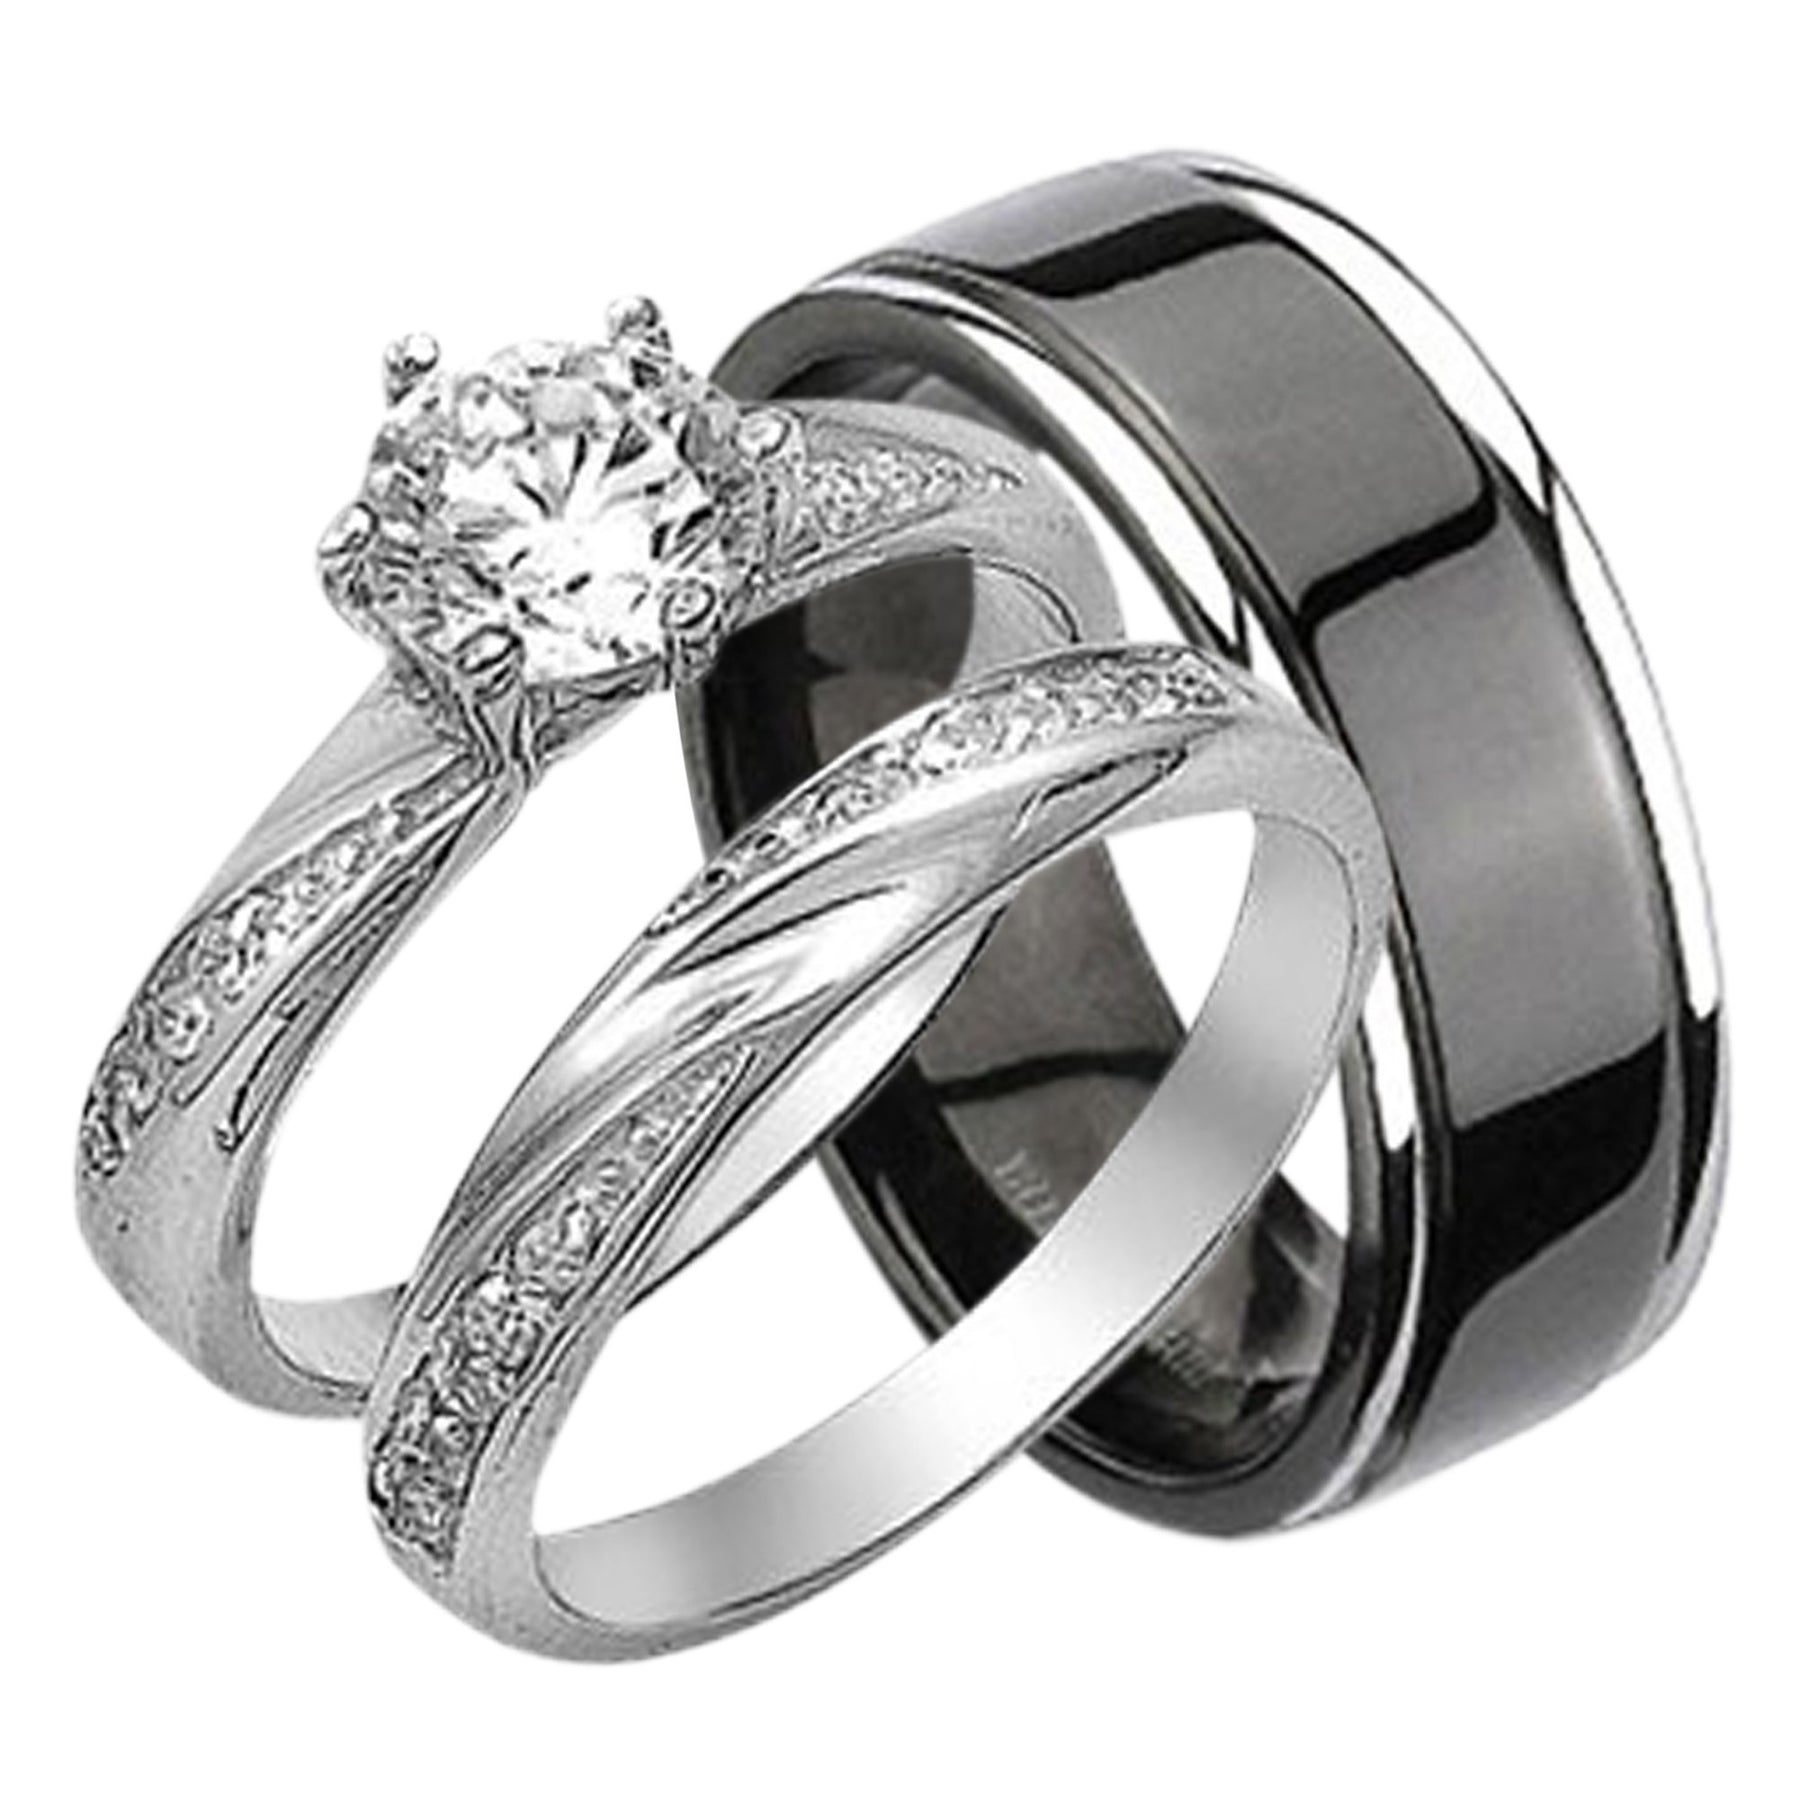 His And Hers Matching Wedding Bands Cheap.His Her Rings Cz Wedding Set His Black Titanium Hers Cubic Zirconia Wedding Bands